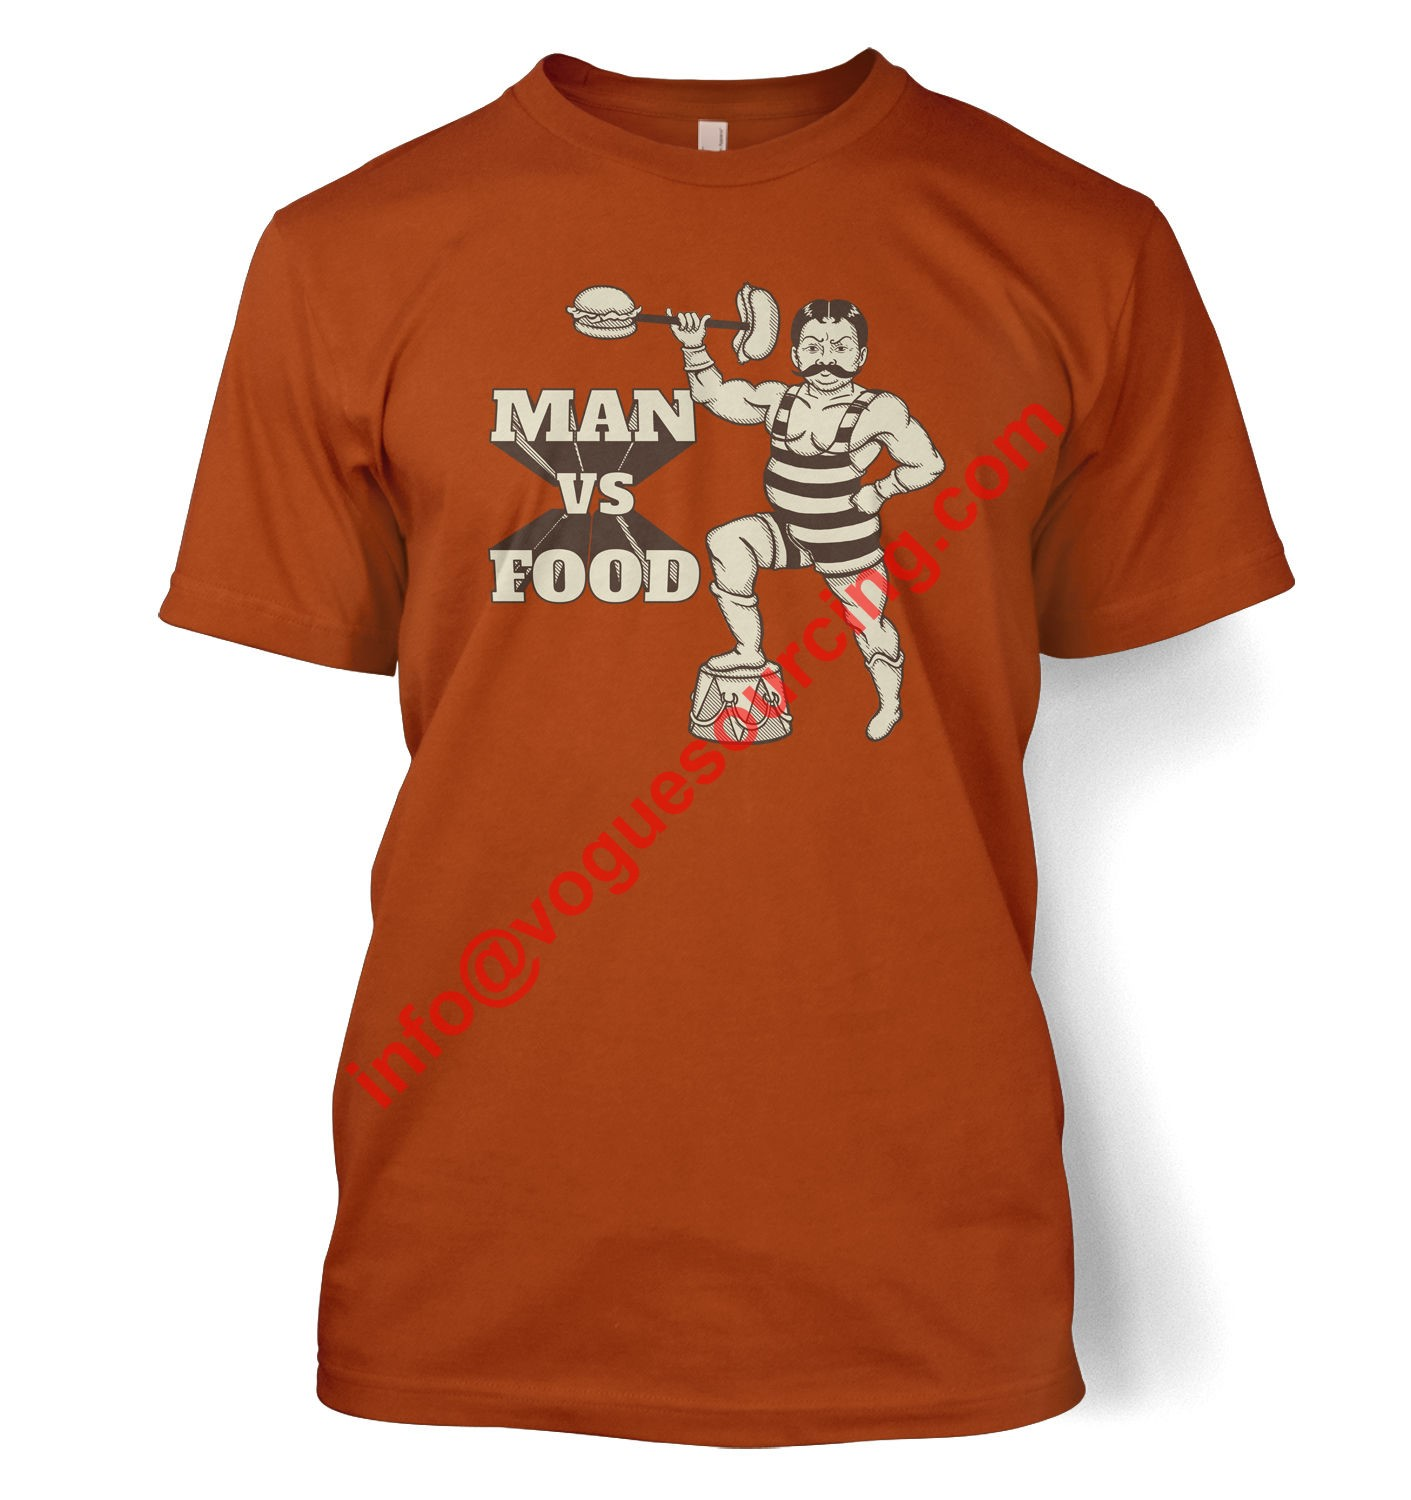 Food t shirts india food for T shirt manufacturing machine in india